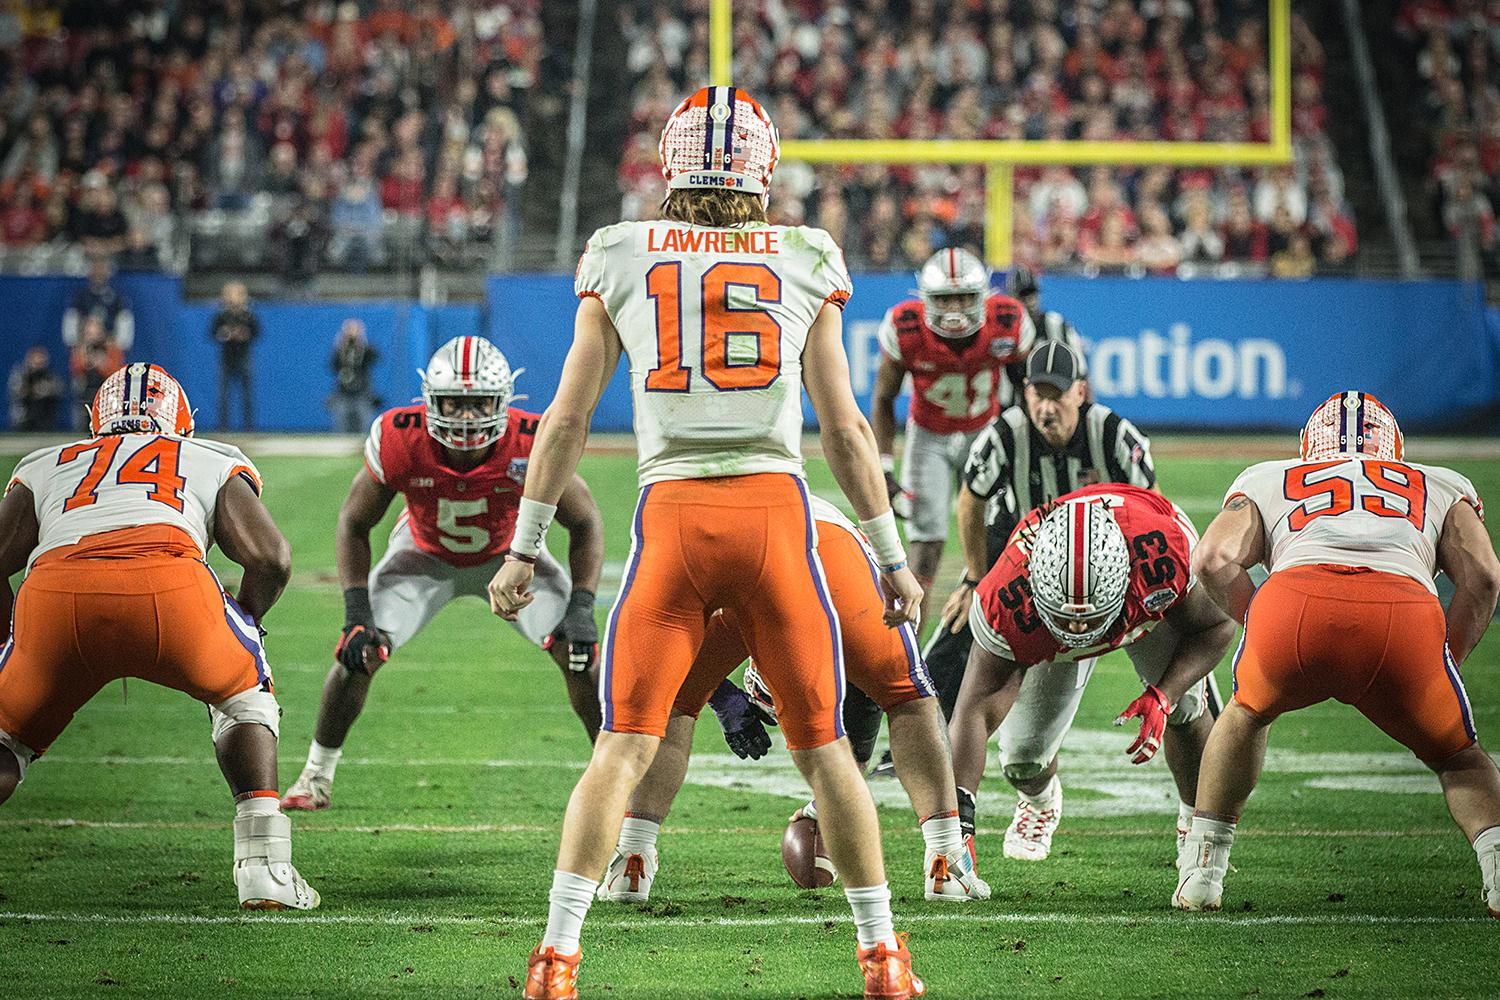 Trevor Lawrence Clemson Football Fiesta Bowl Ohio State